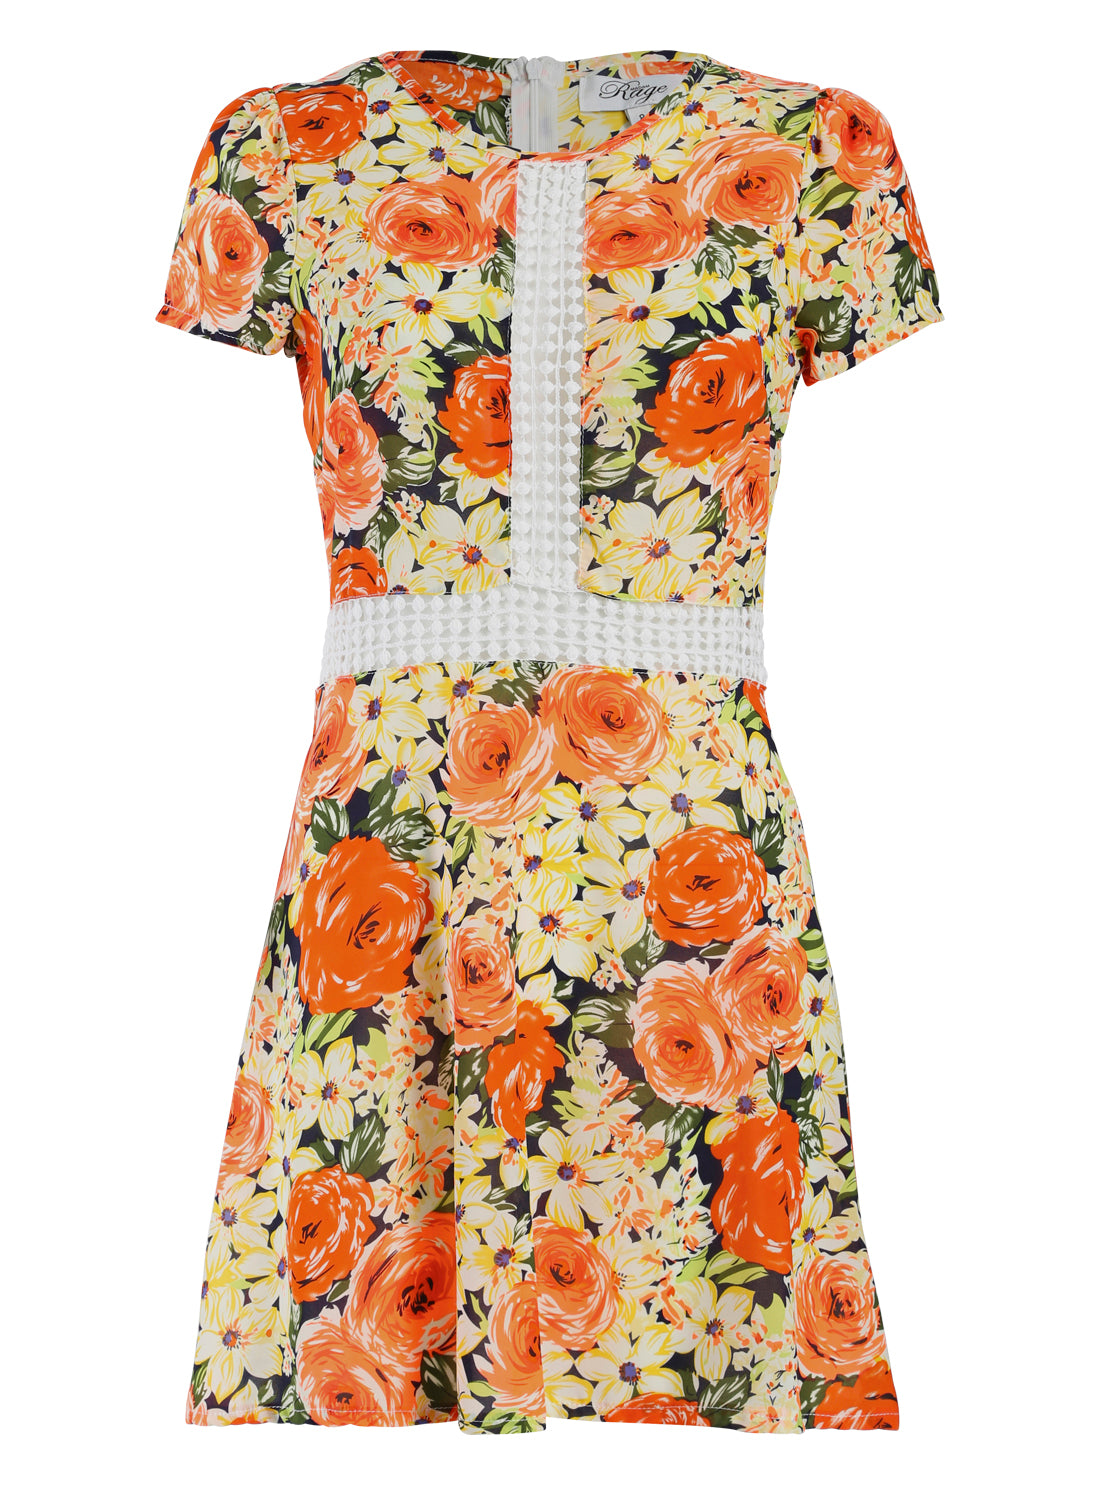 Floral Crotchet Dress